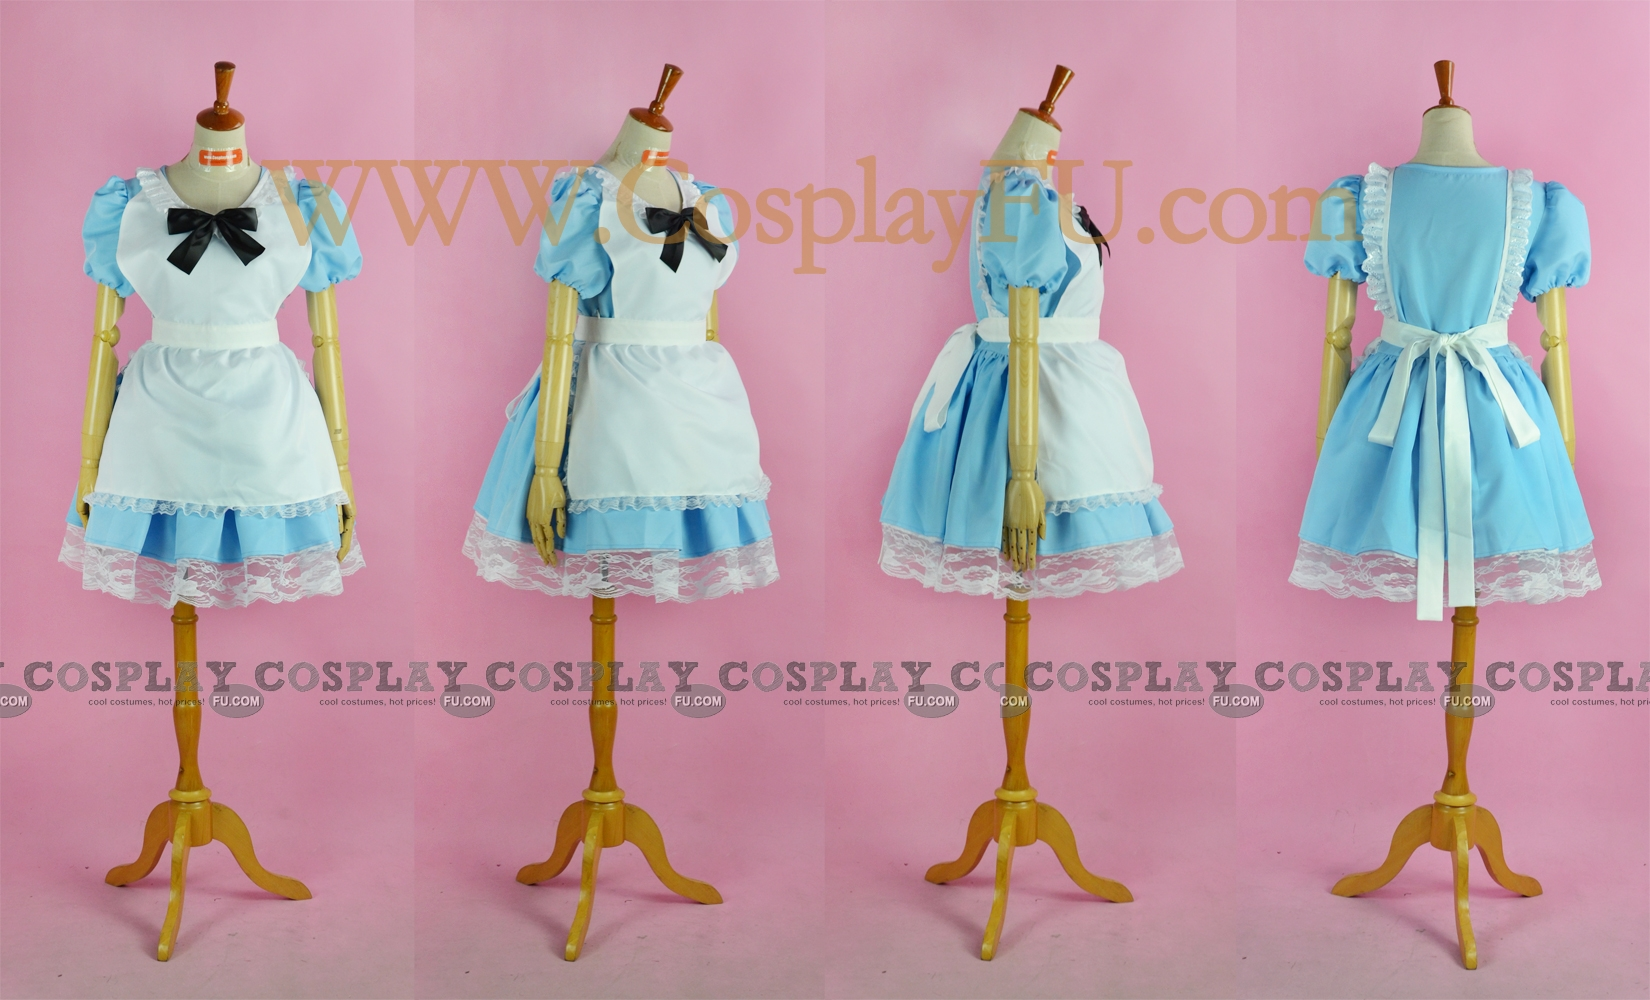 Alice Cosplay Costume (3rd) from Alice in Wonderland